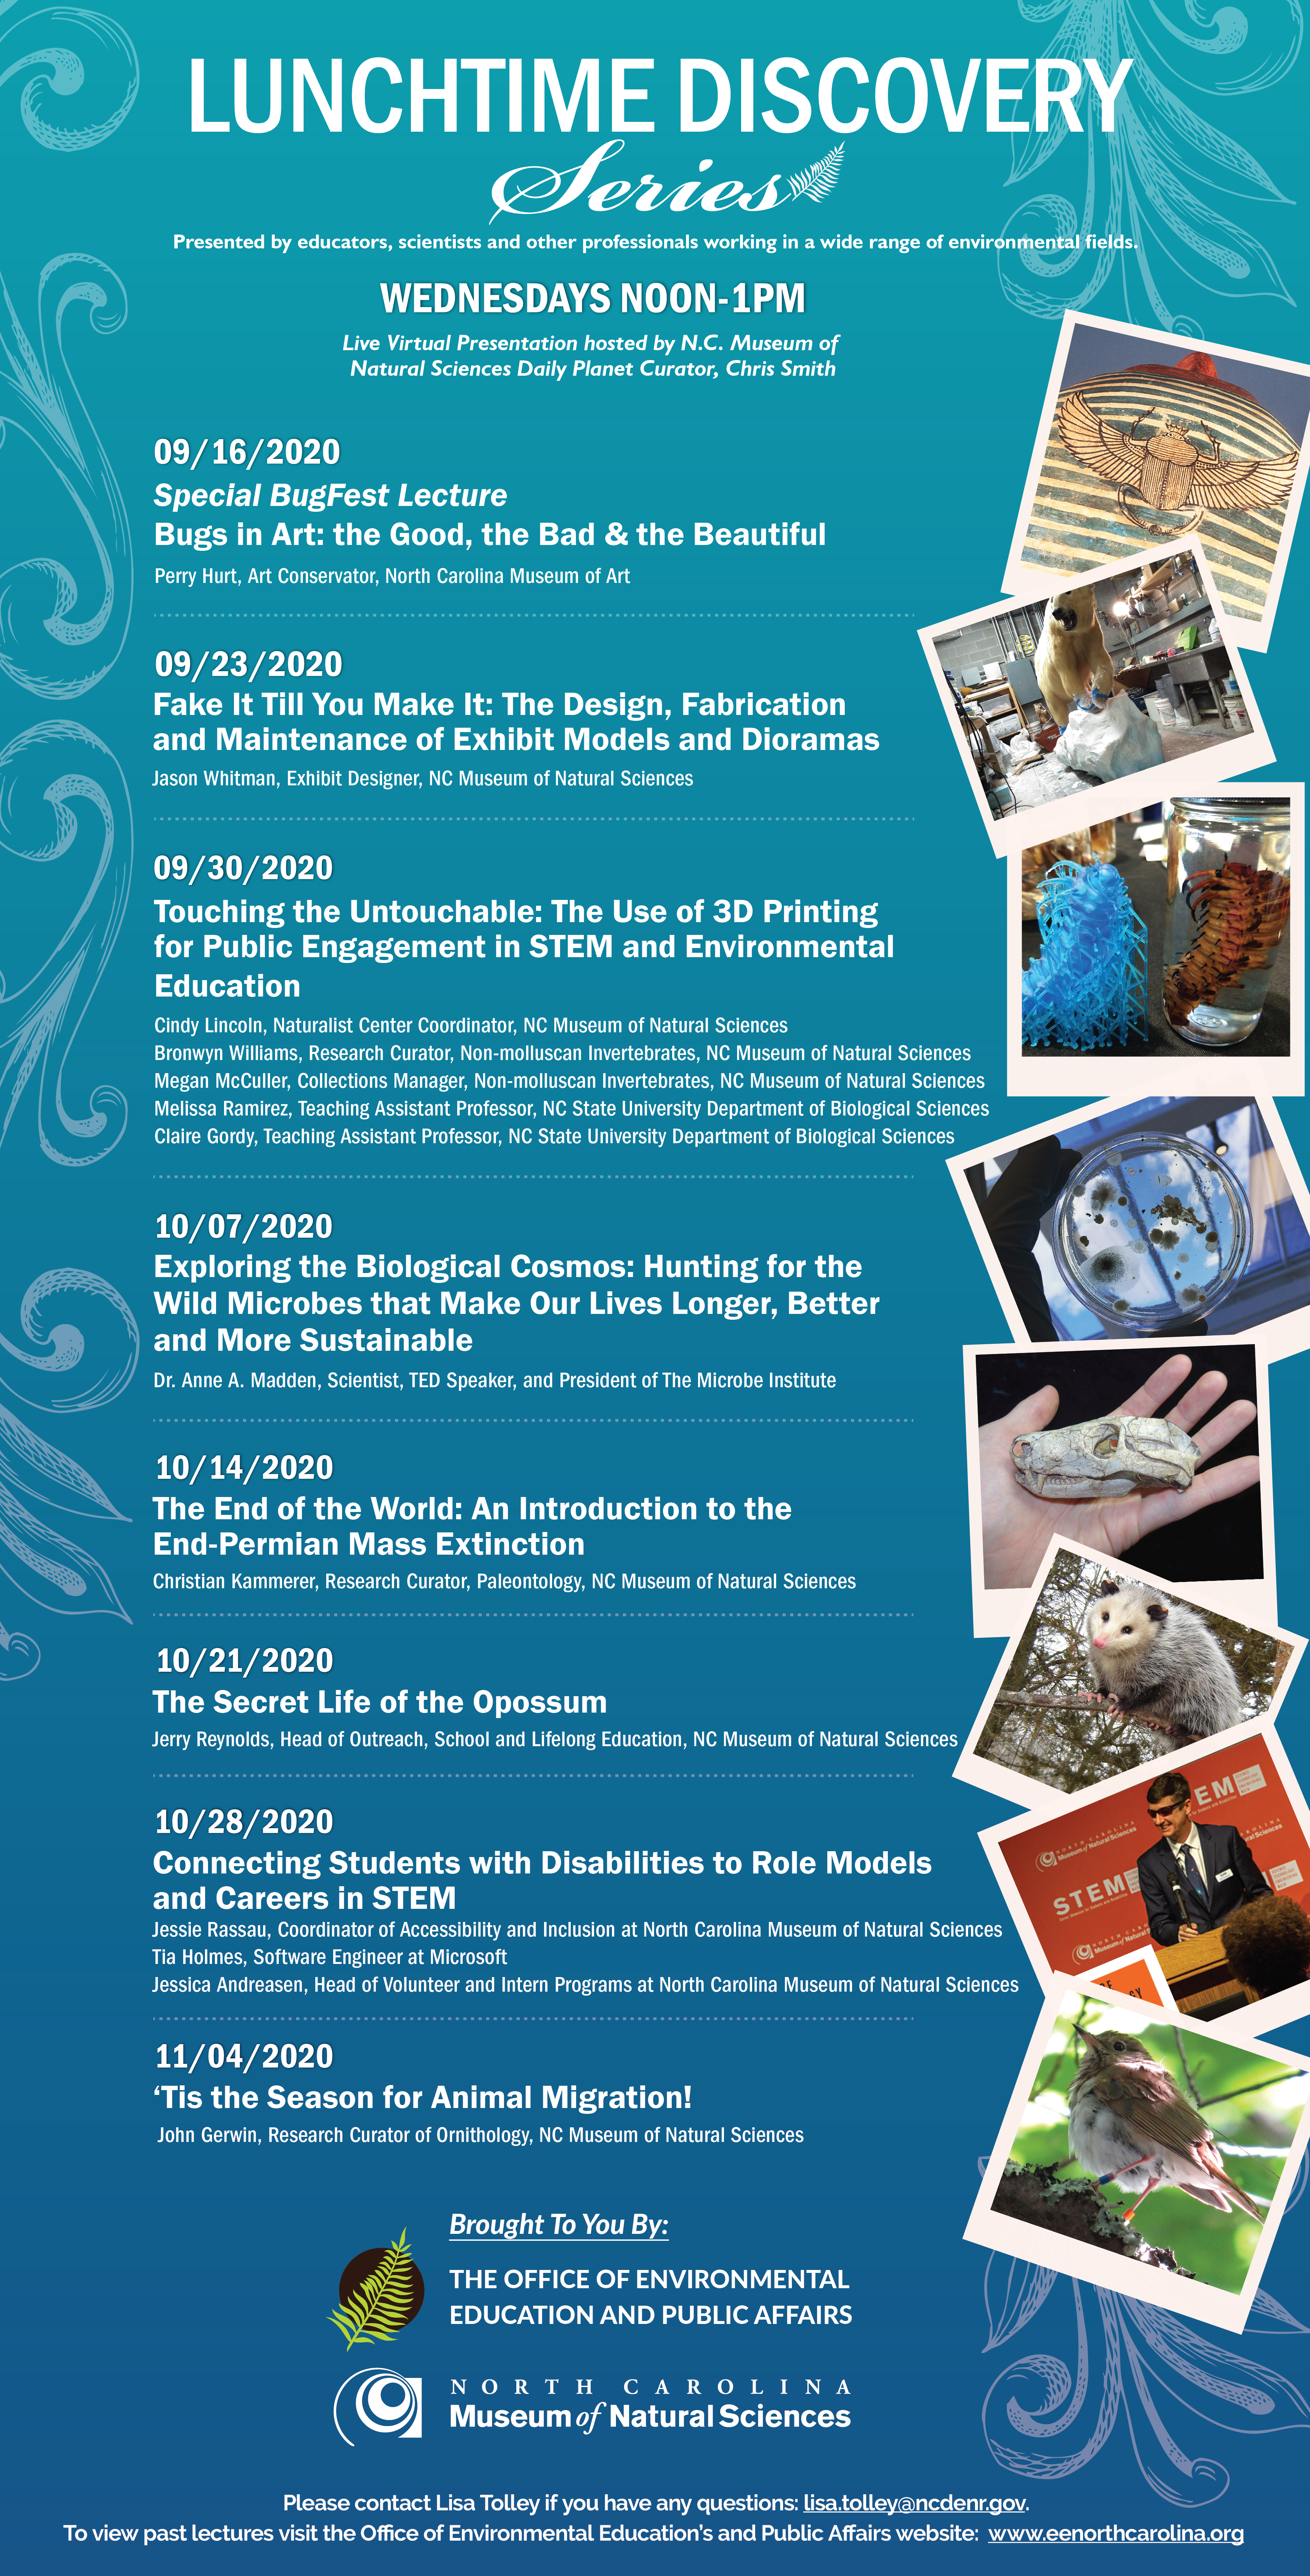 poster promoting the lunchtime lecture series